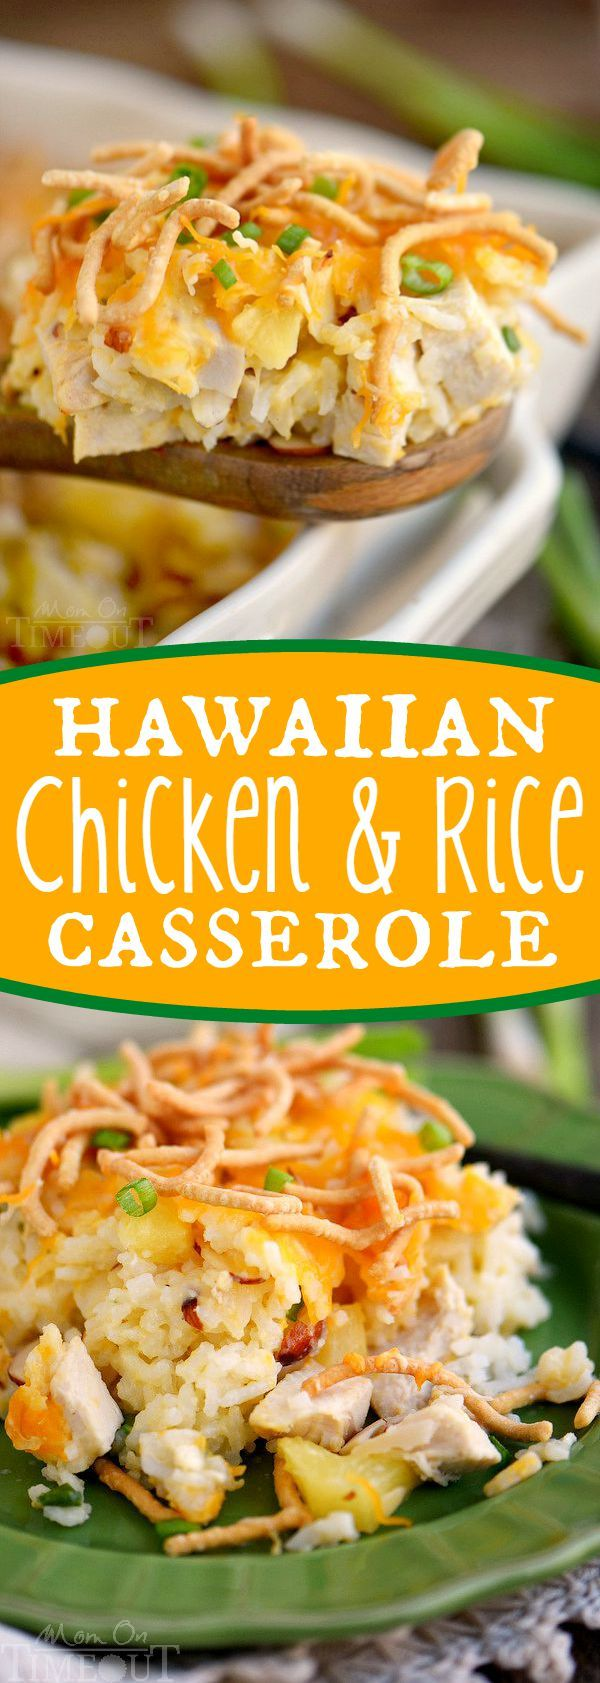 Get ready for a new favorite recipe - Hawaiian Chicken and Rice Casserole! An easy weeknight dinner that uses ingredients you probably already have in your pantry!